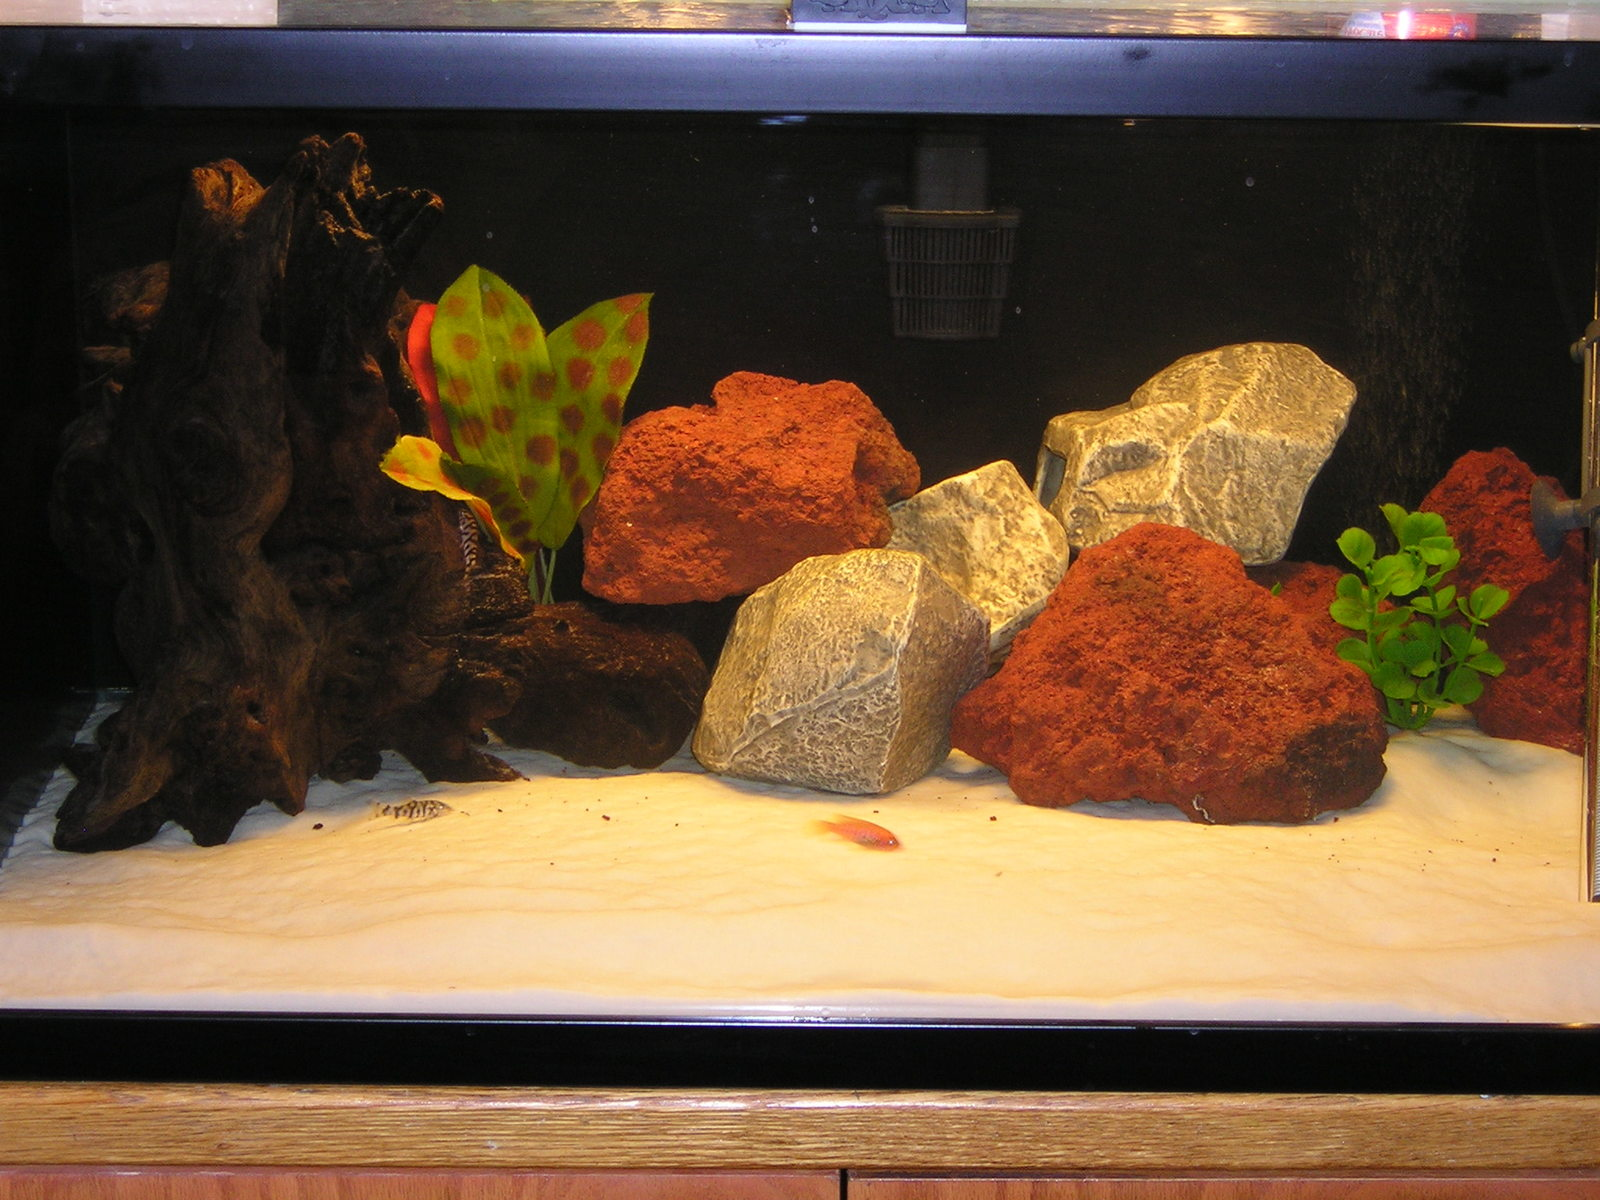 new tank setup | by Jay William